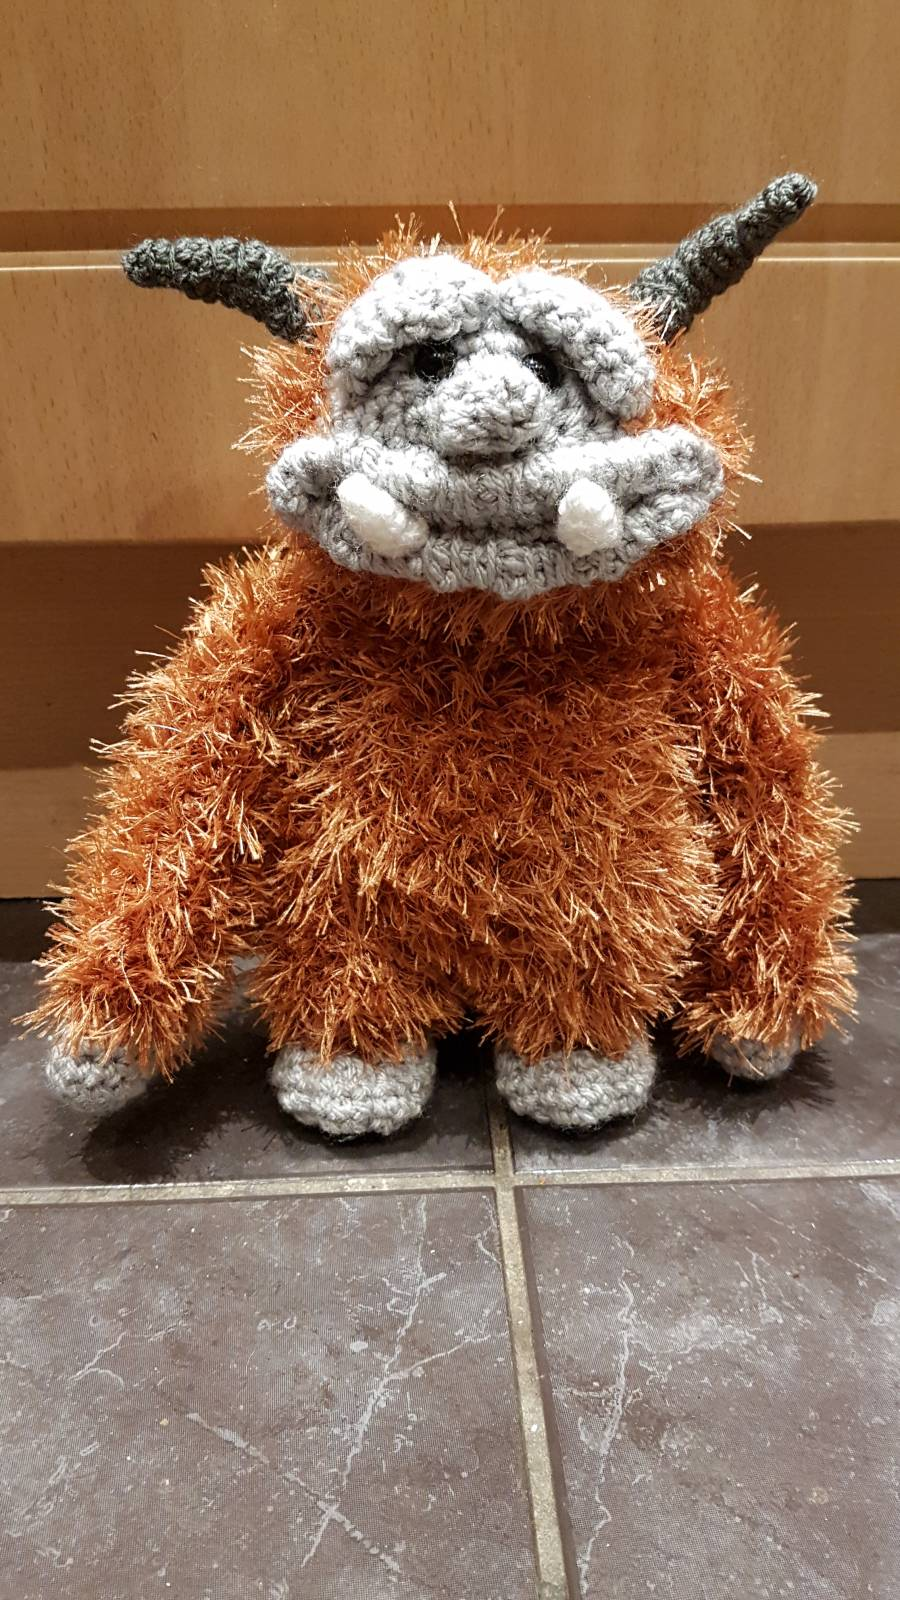 Ludo Labyrinth Crochet Amigurumi Pattern Review for Cottontail and Whiskers by Carol Bowyer